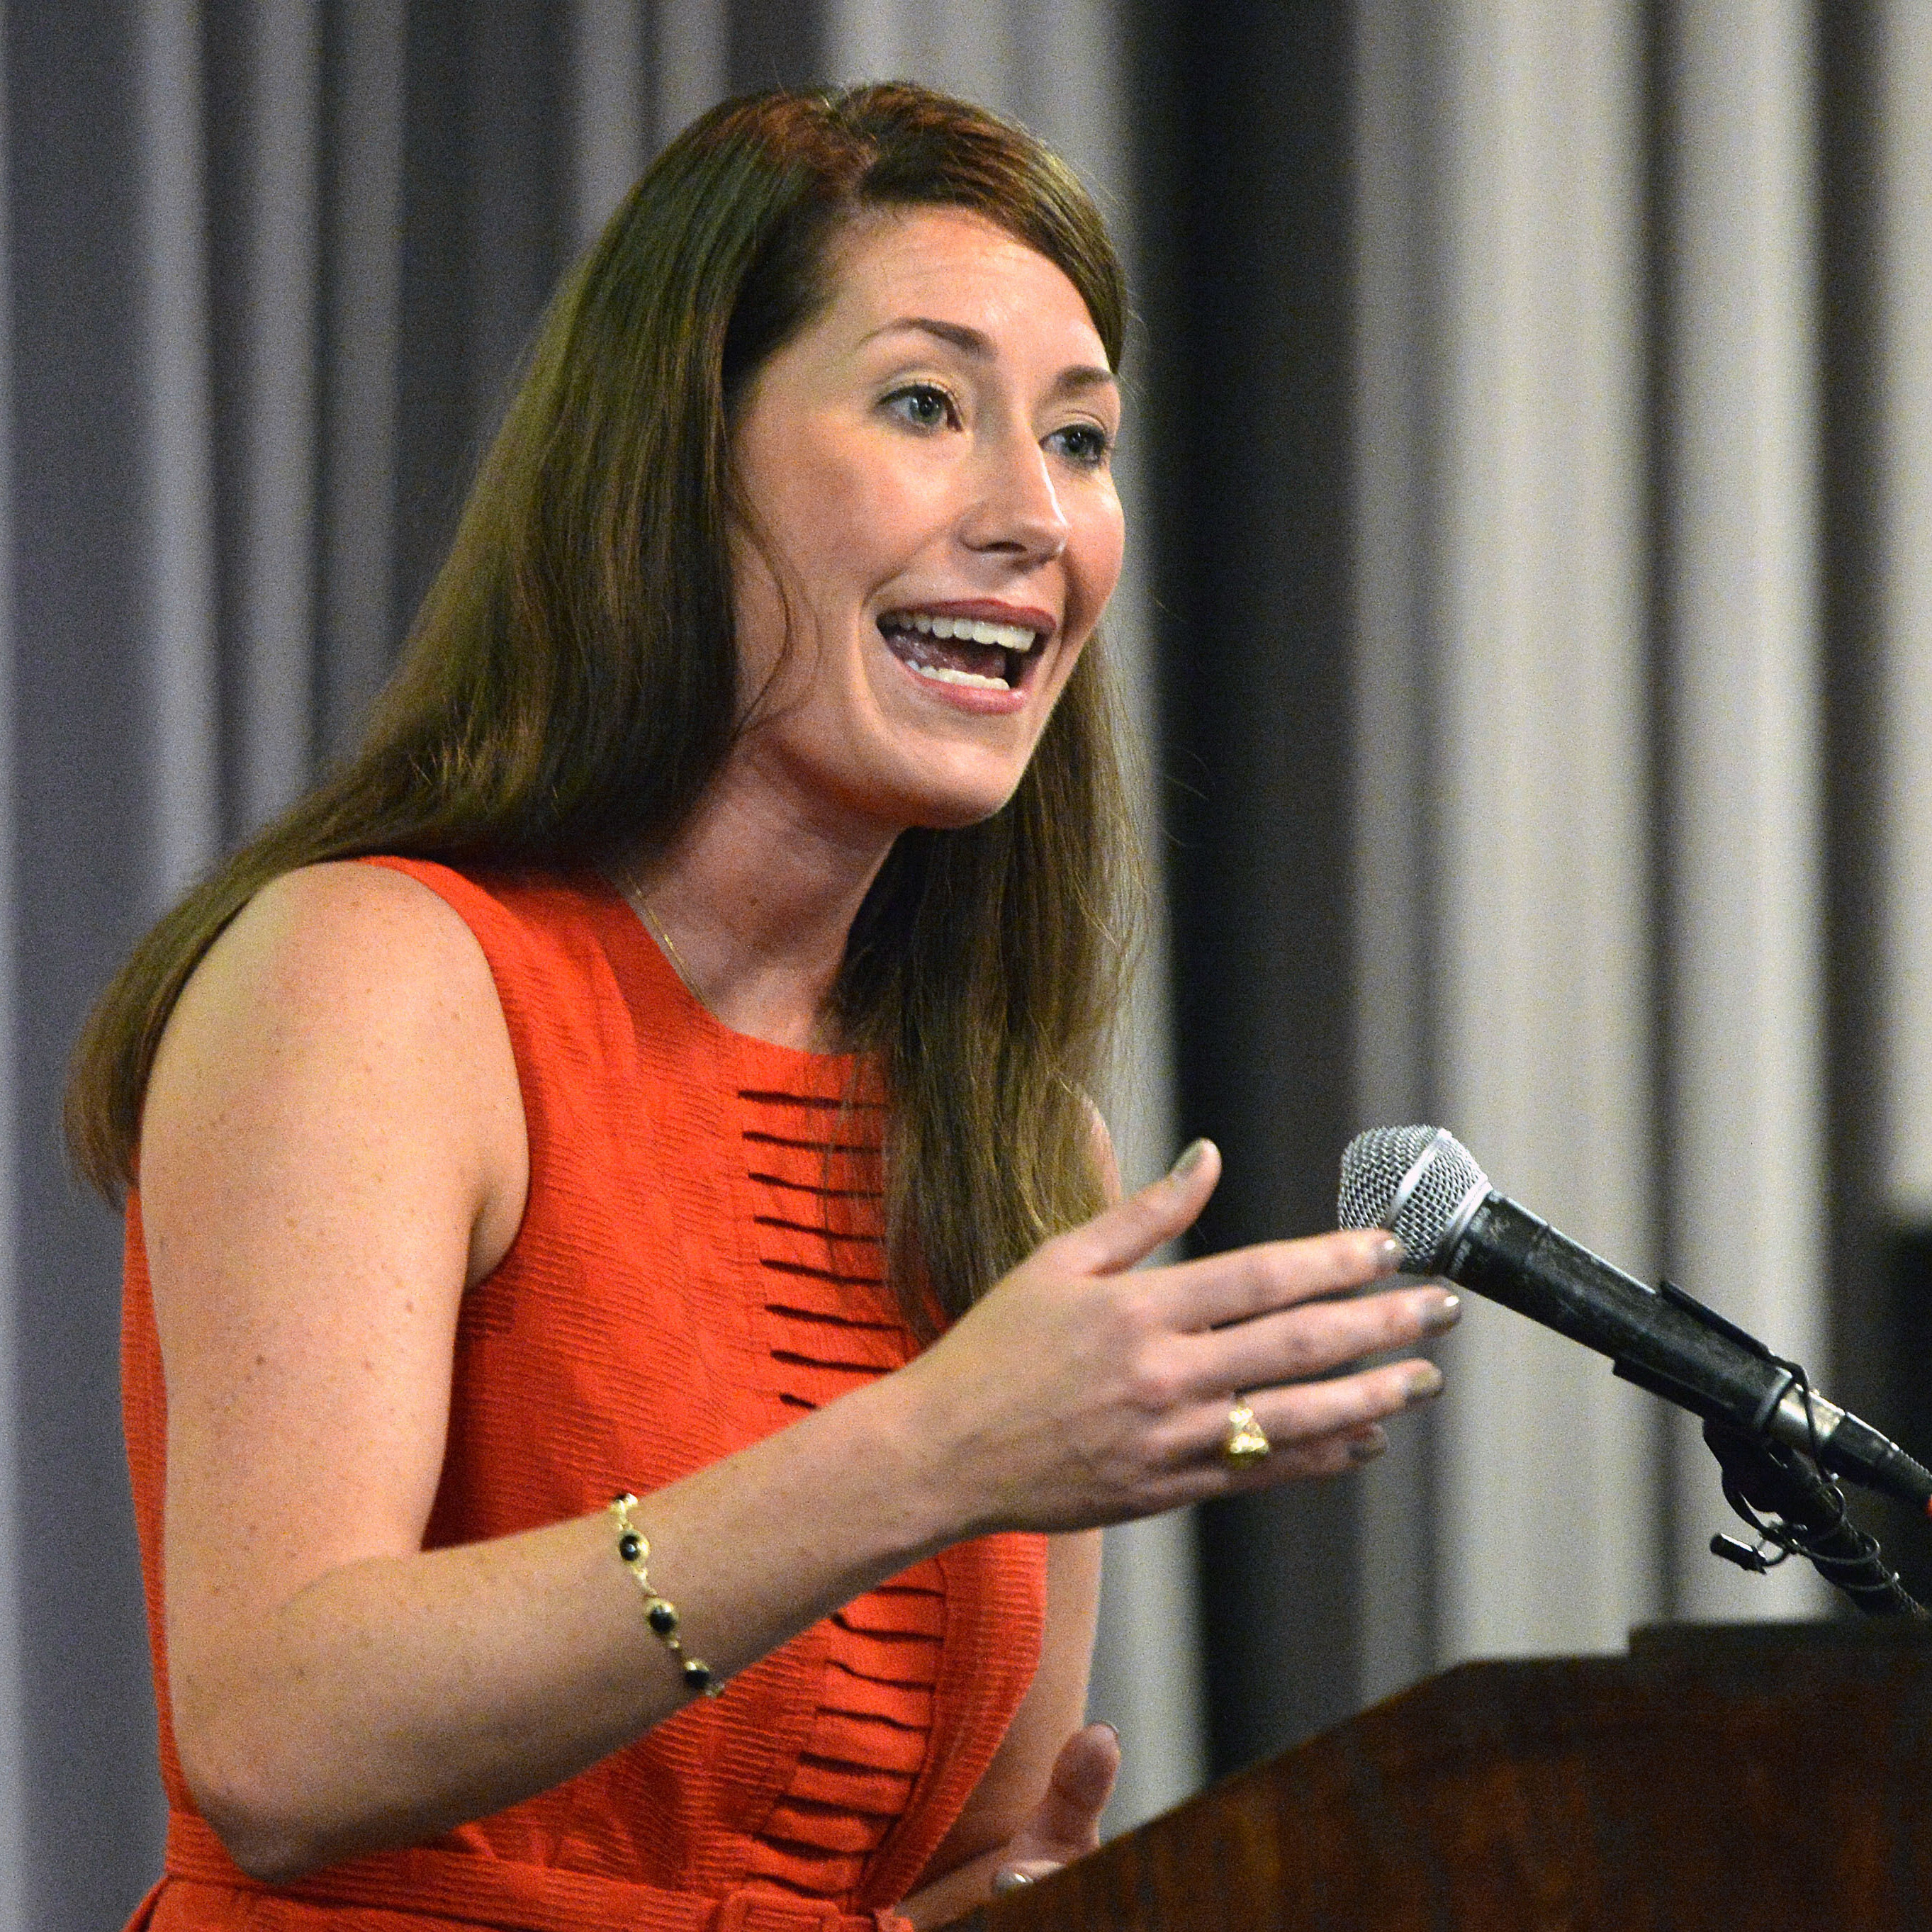 Democrat Alison Lundergan Grimes is running for Senate in Kentucky against Minority Leader Mitch McConnell.